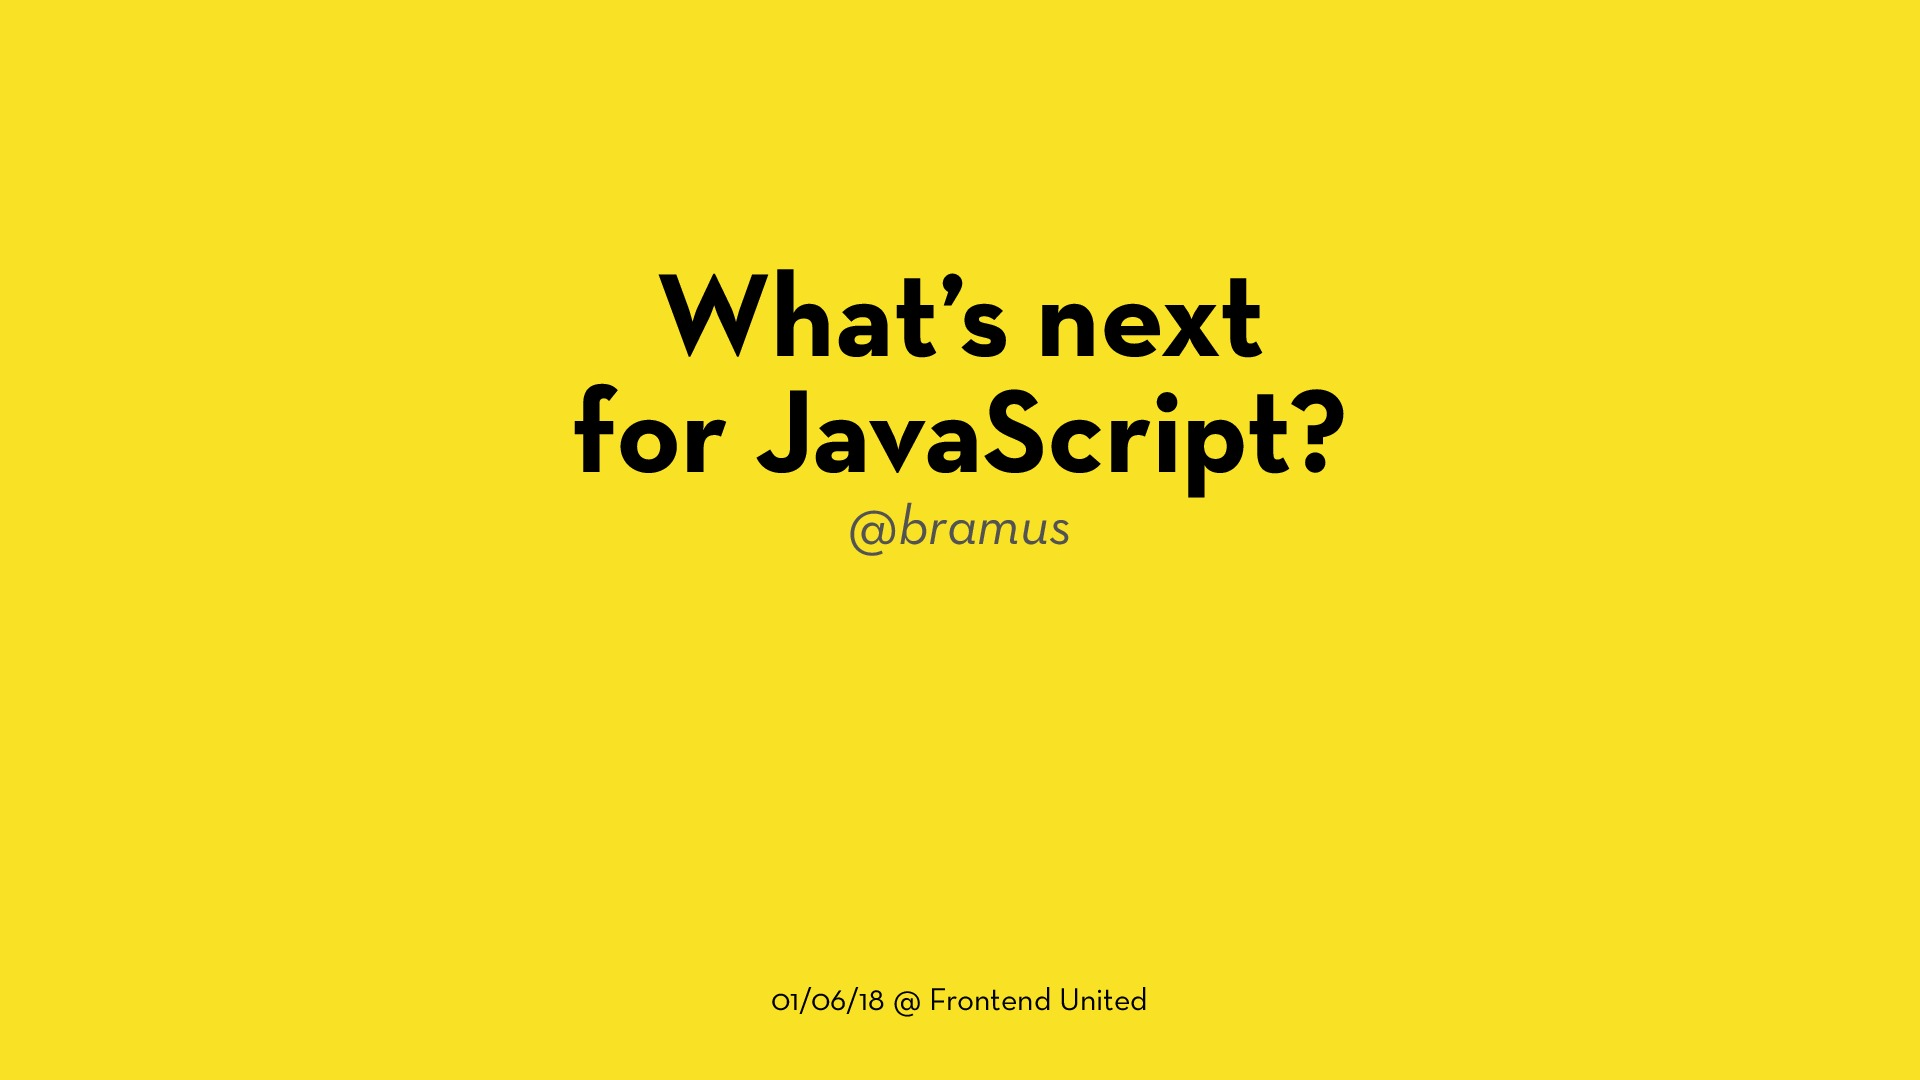 What's next for JavaScript? (2018.06.01 @ Frontend United)